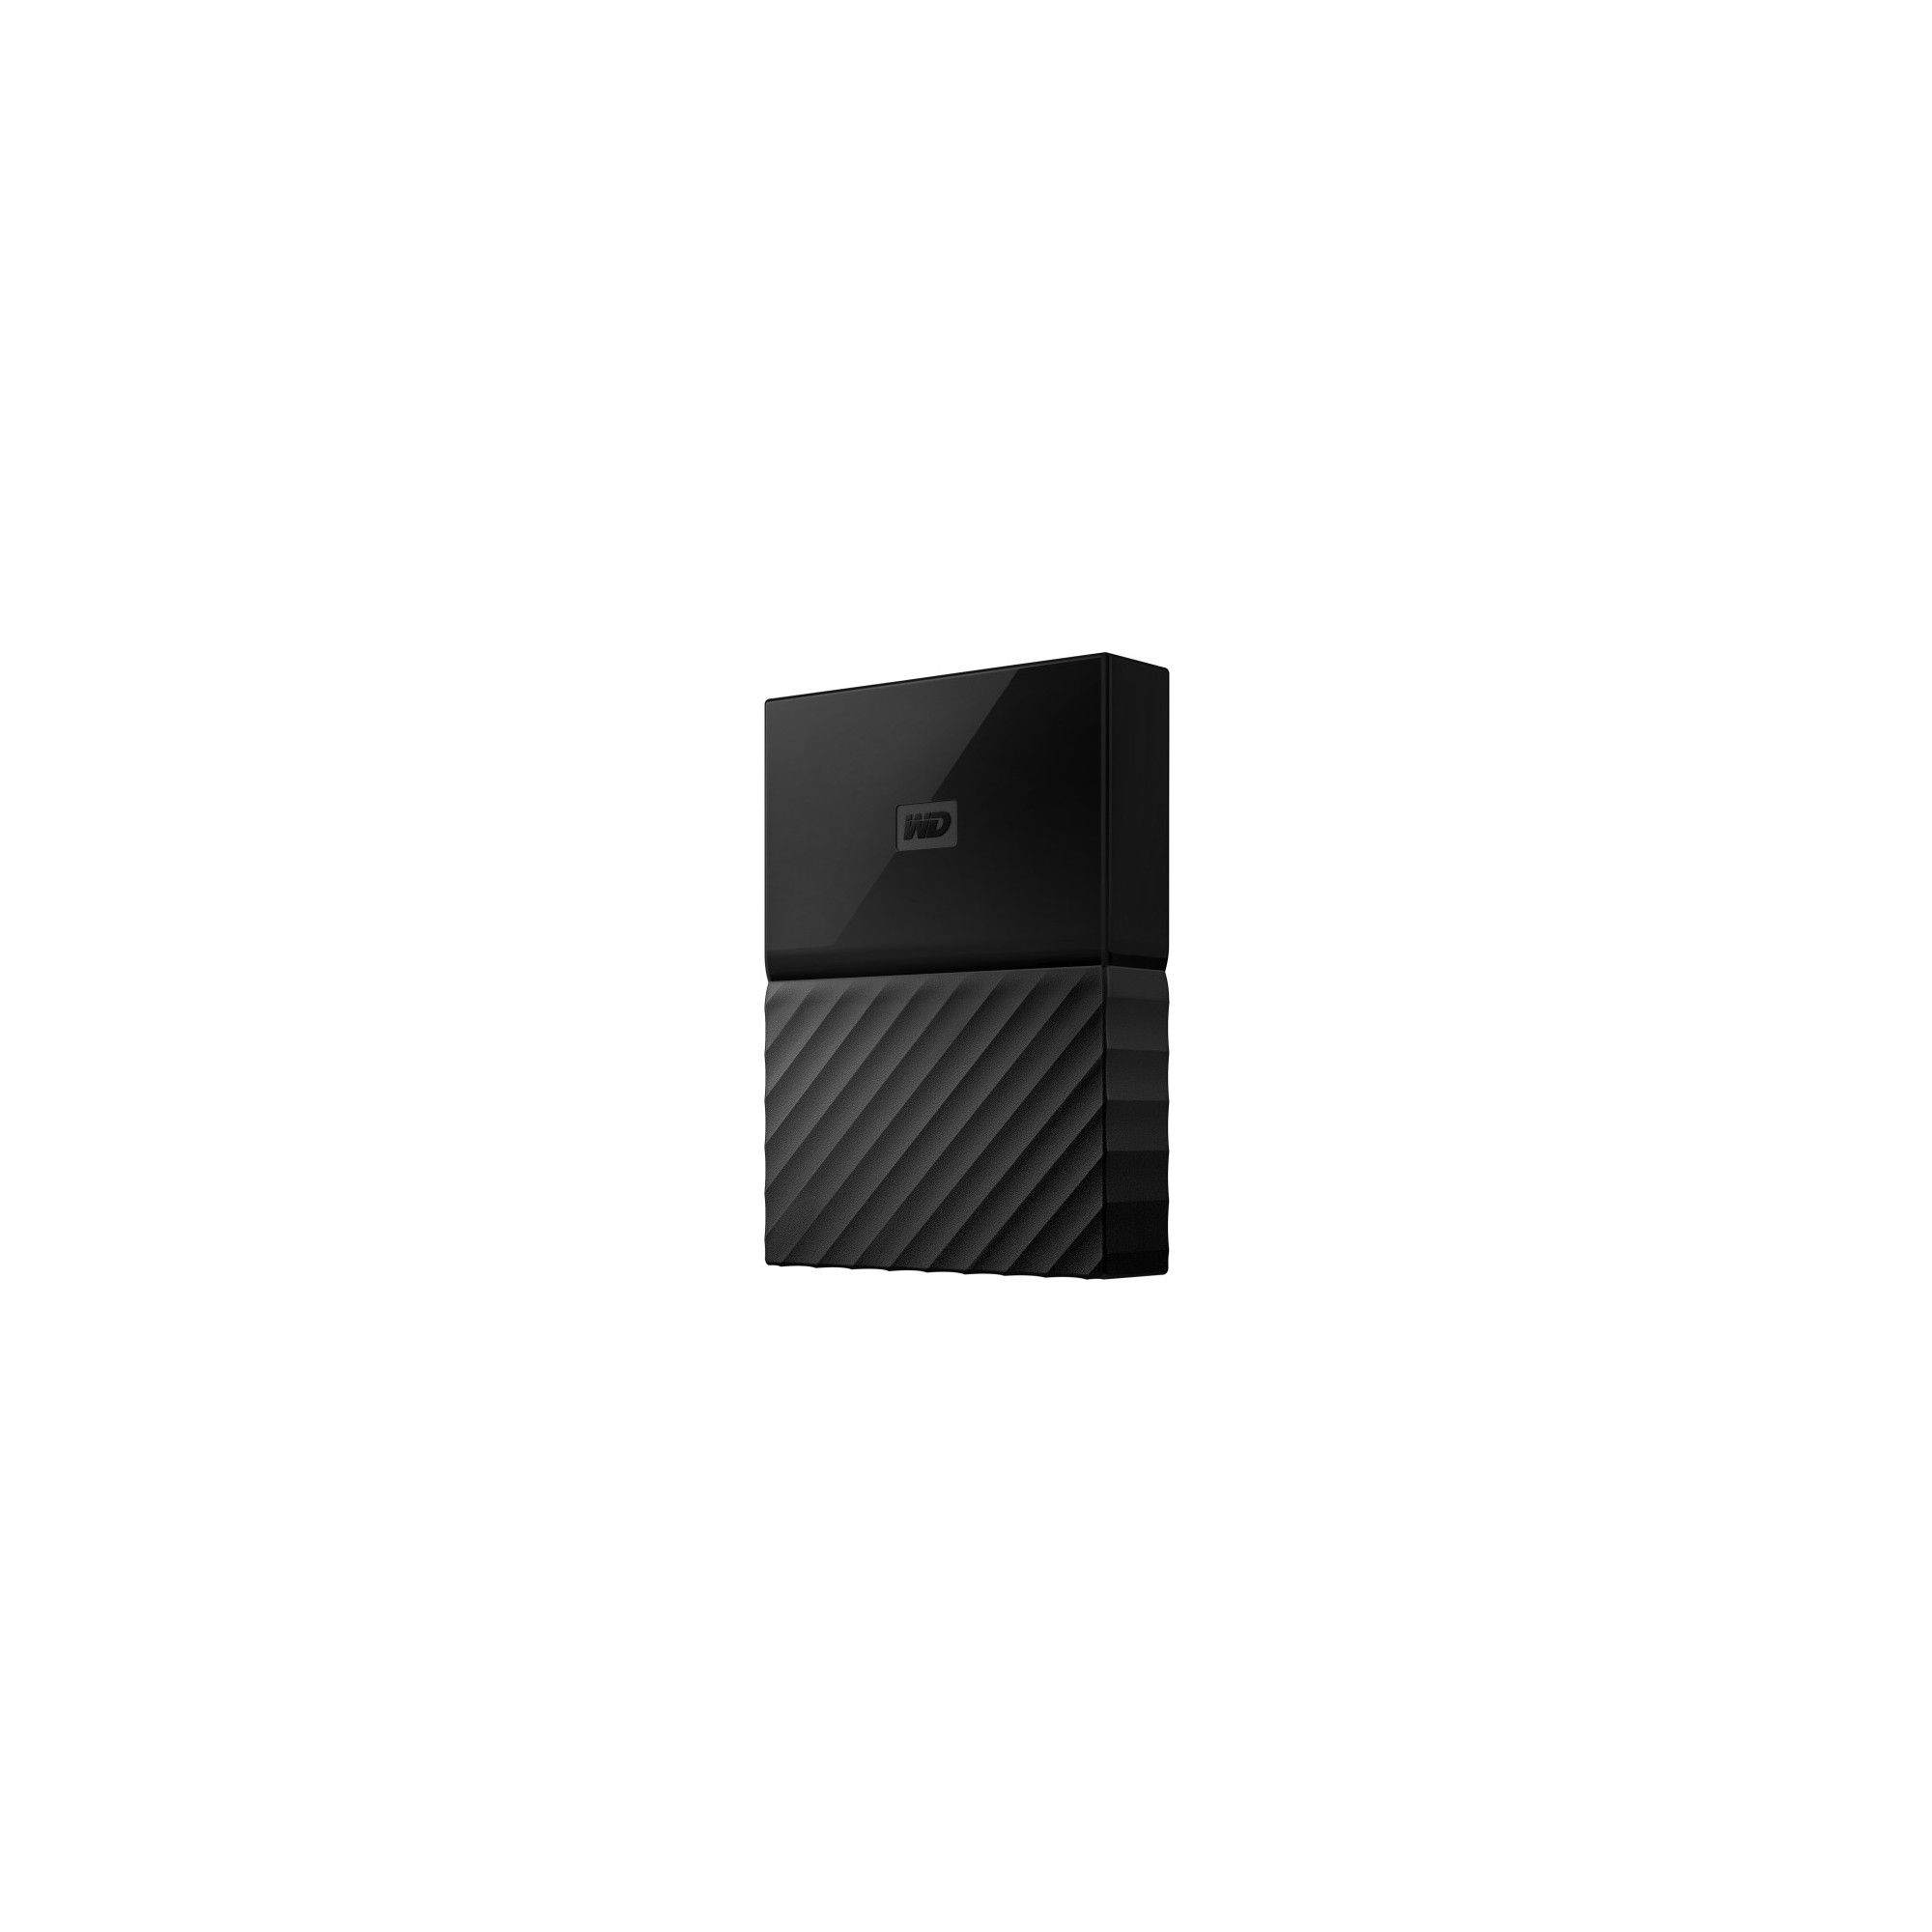 WD My Passport for Mac WDBP6A0030BBK-WESE 3 TB Hard Drive